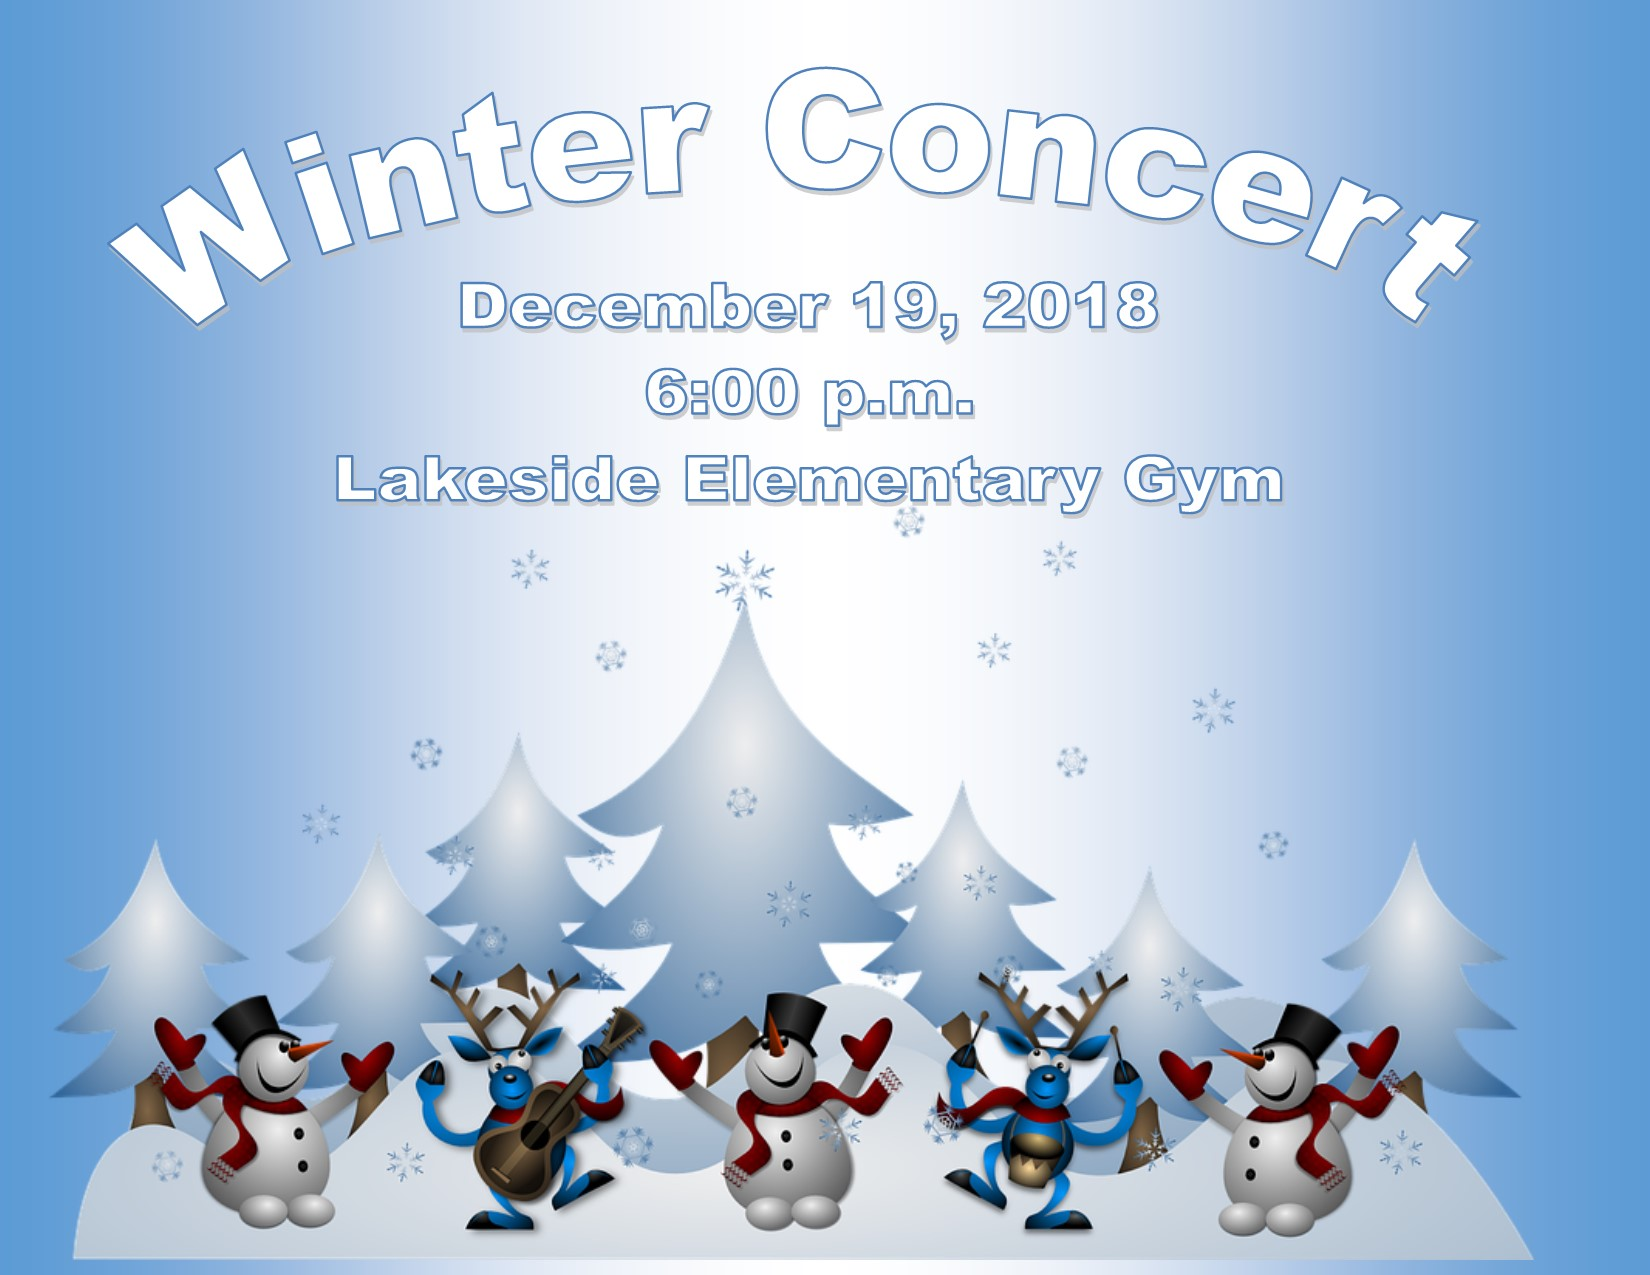 Upcoming Winter Concert